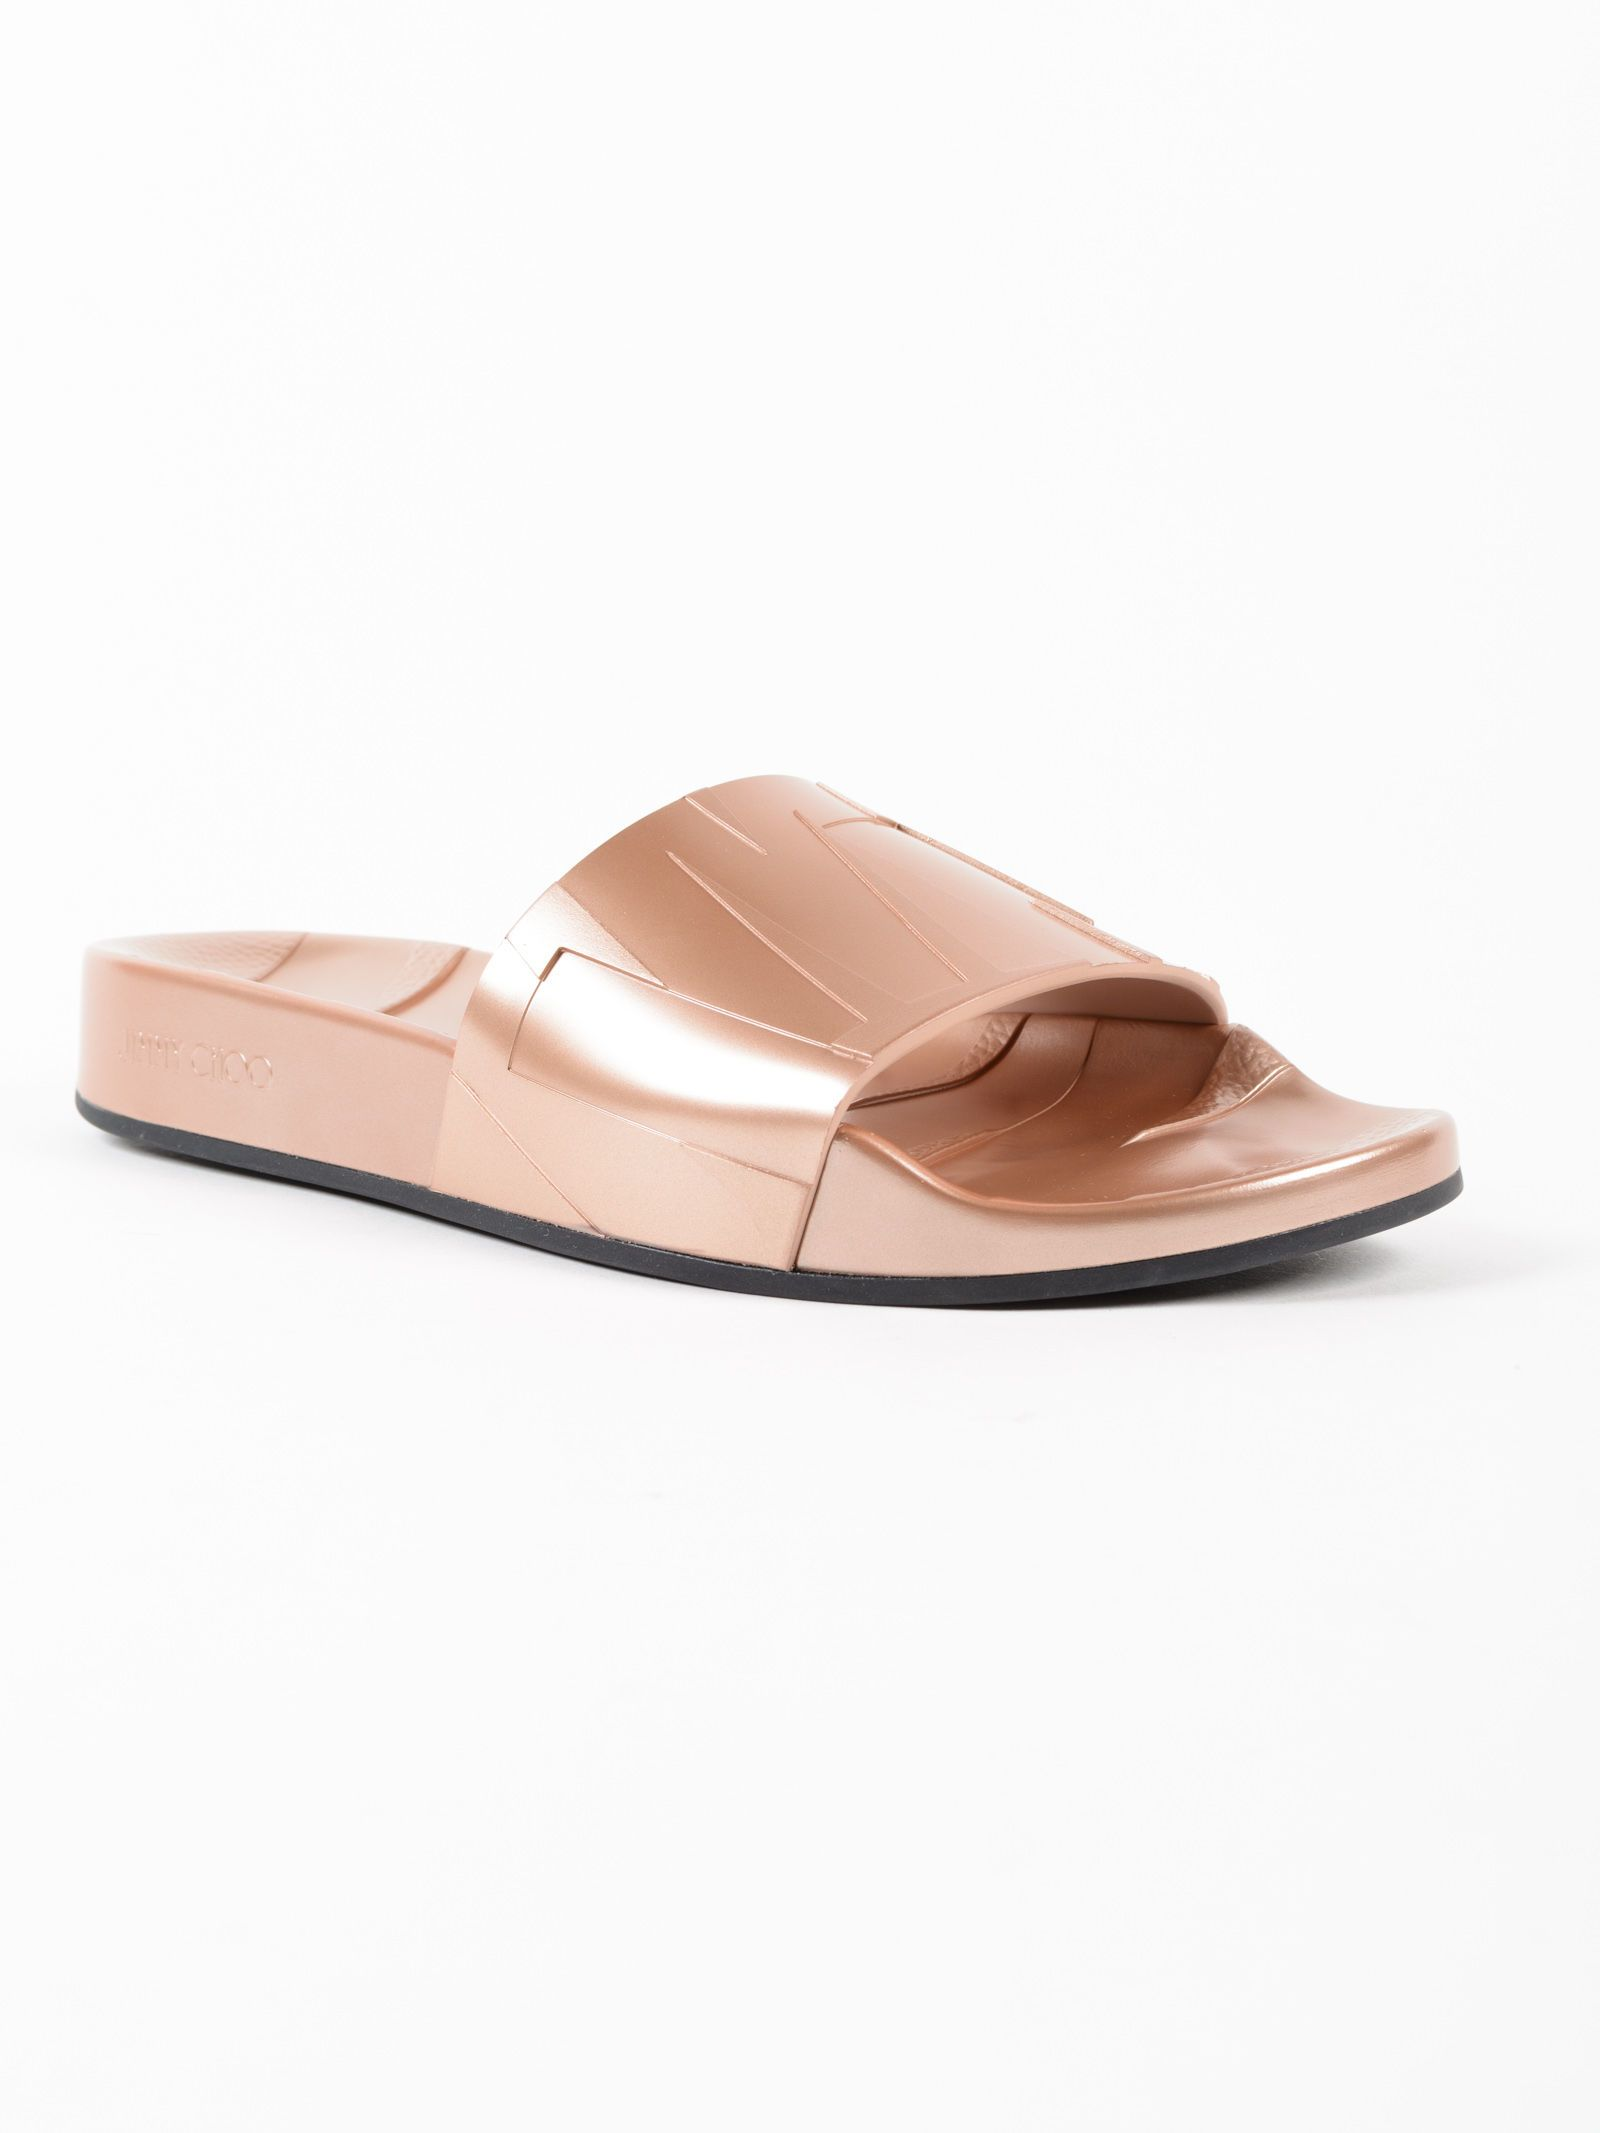 Jimmy choo Metallic Rubber Pool Sliders Clearance Wholesale Price Cheap Sale Cheapest Price Low Price Fee Shipping Cheap Price 4toPeJ